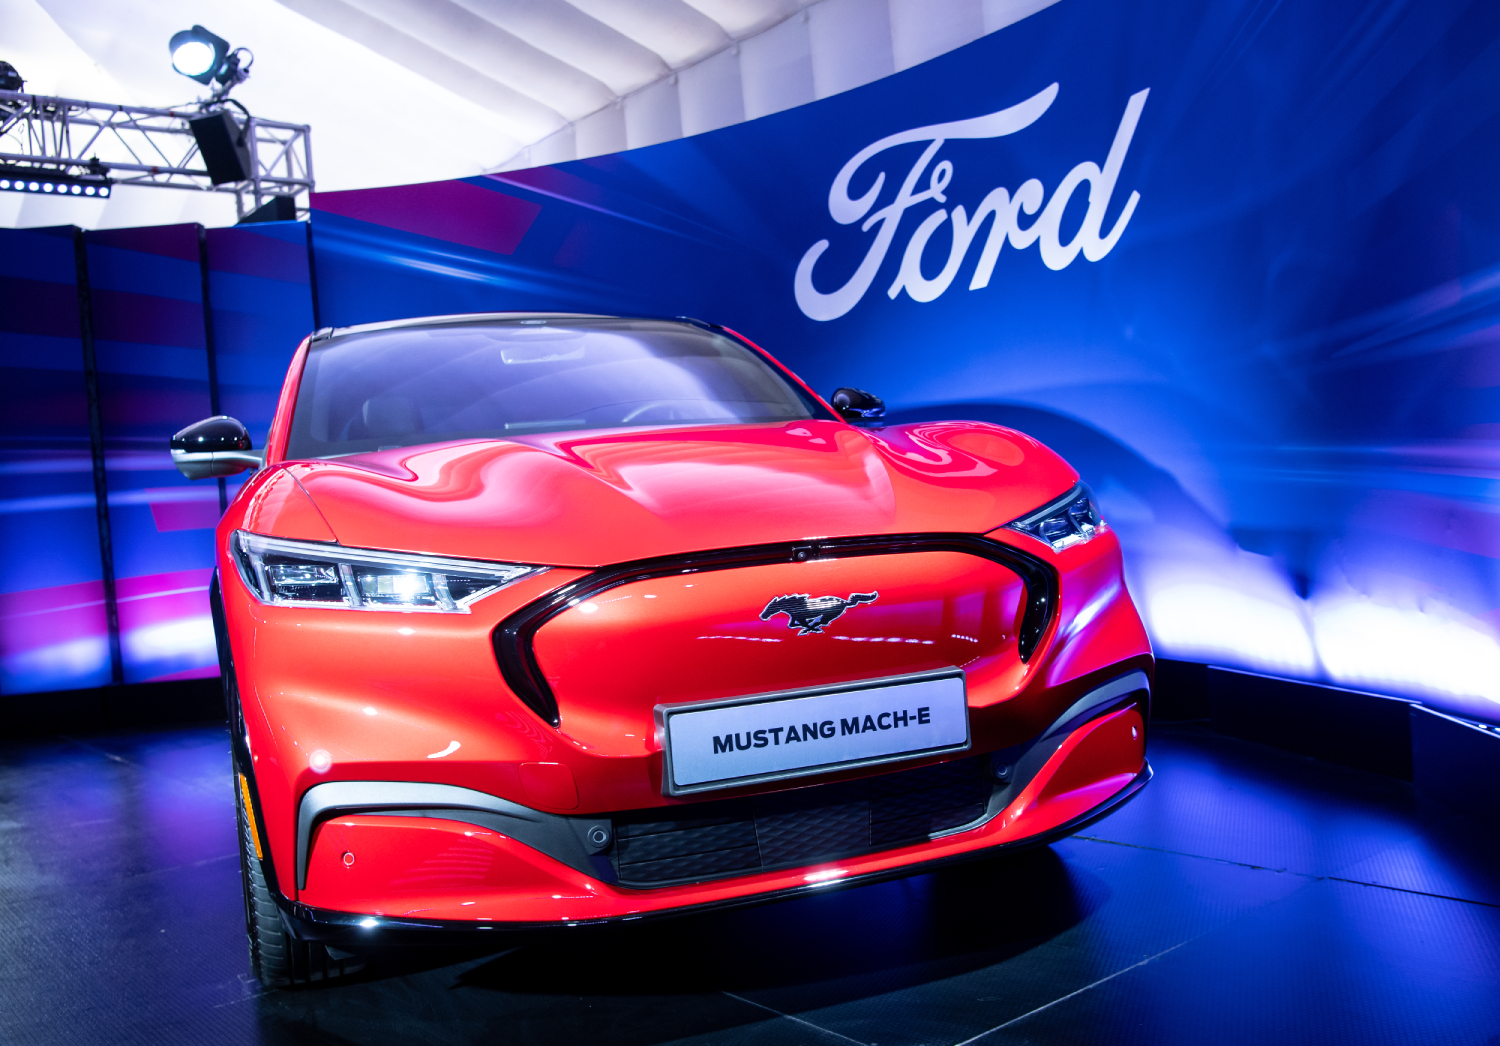 Ford Electric Vehicle Chargers for the Mustang Mach-E